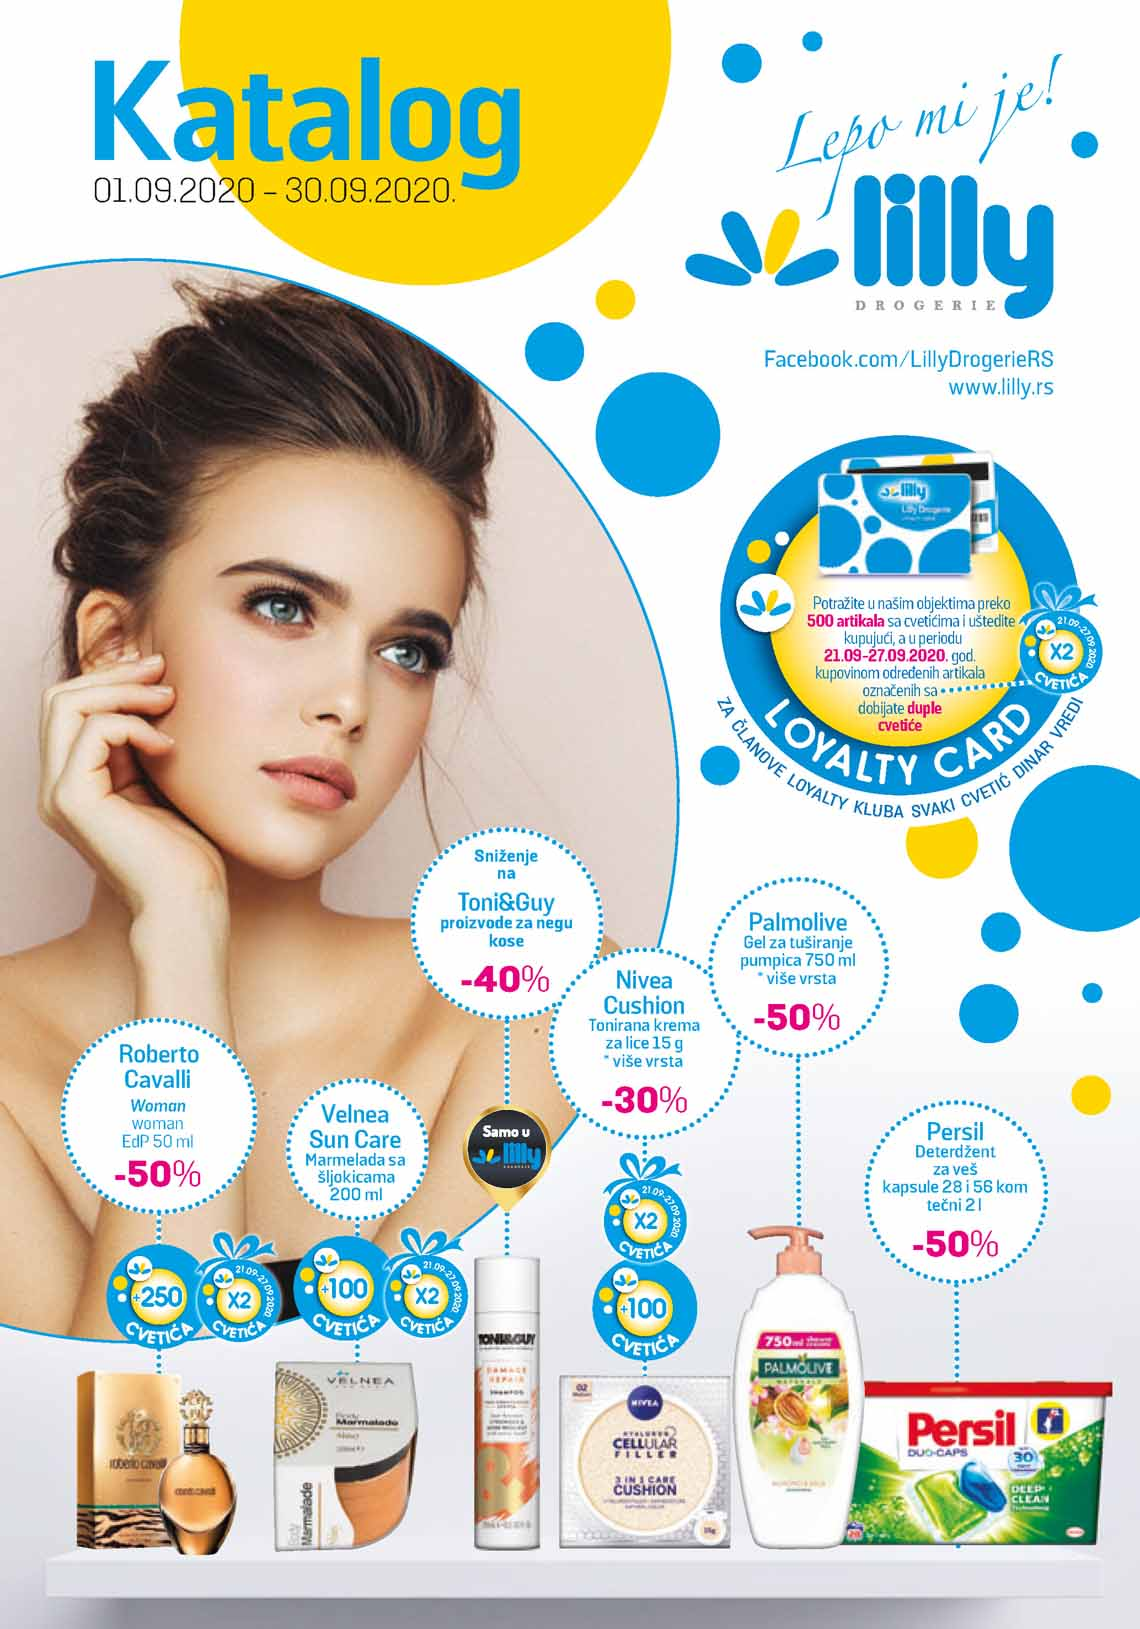 LILLY DROGERIE Katalog - Super akcija do 30.09.2020.